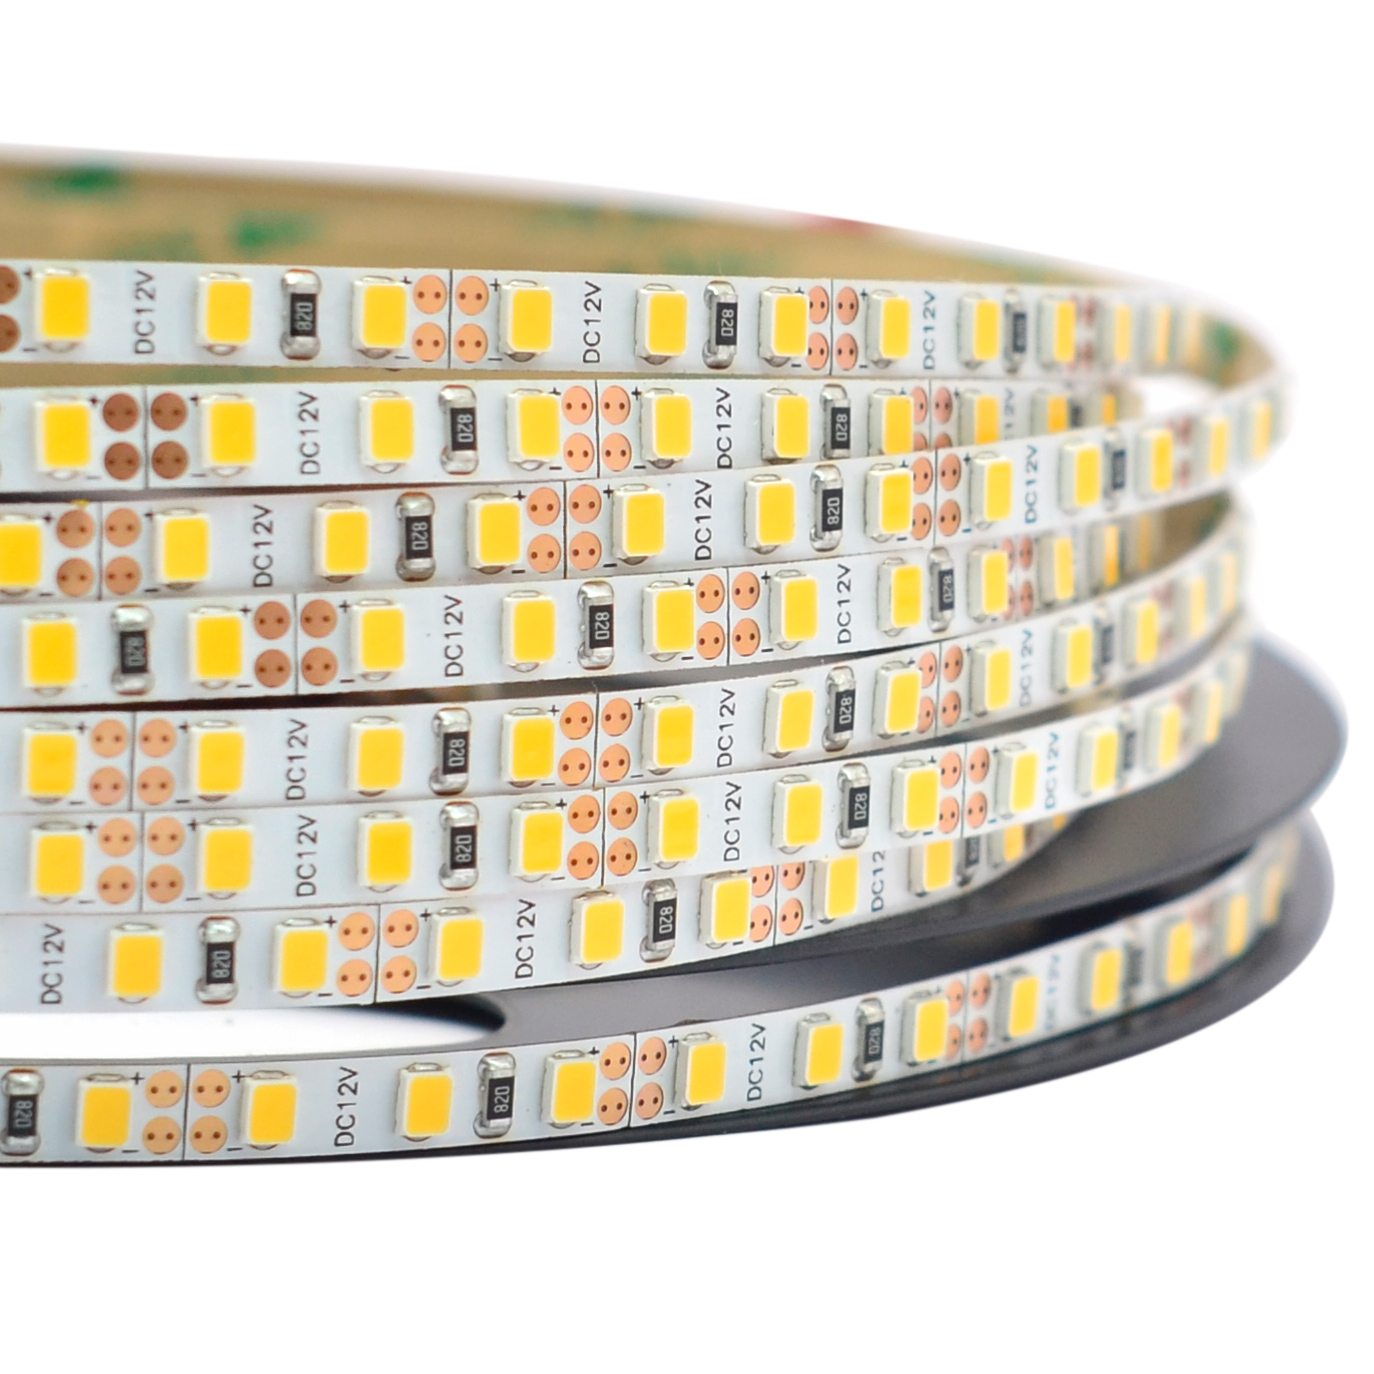 2835 smd flexible led strip lights single row narrow dc24v series 2835smd 480leds flexible led strip lights indoor lighting width 5mm 164 aloadofball Image collections